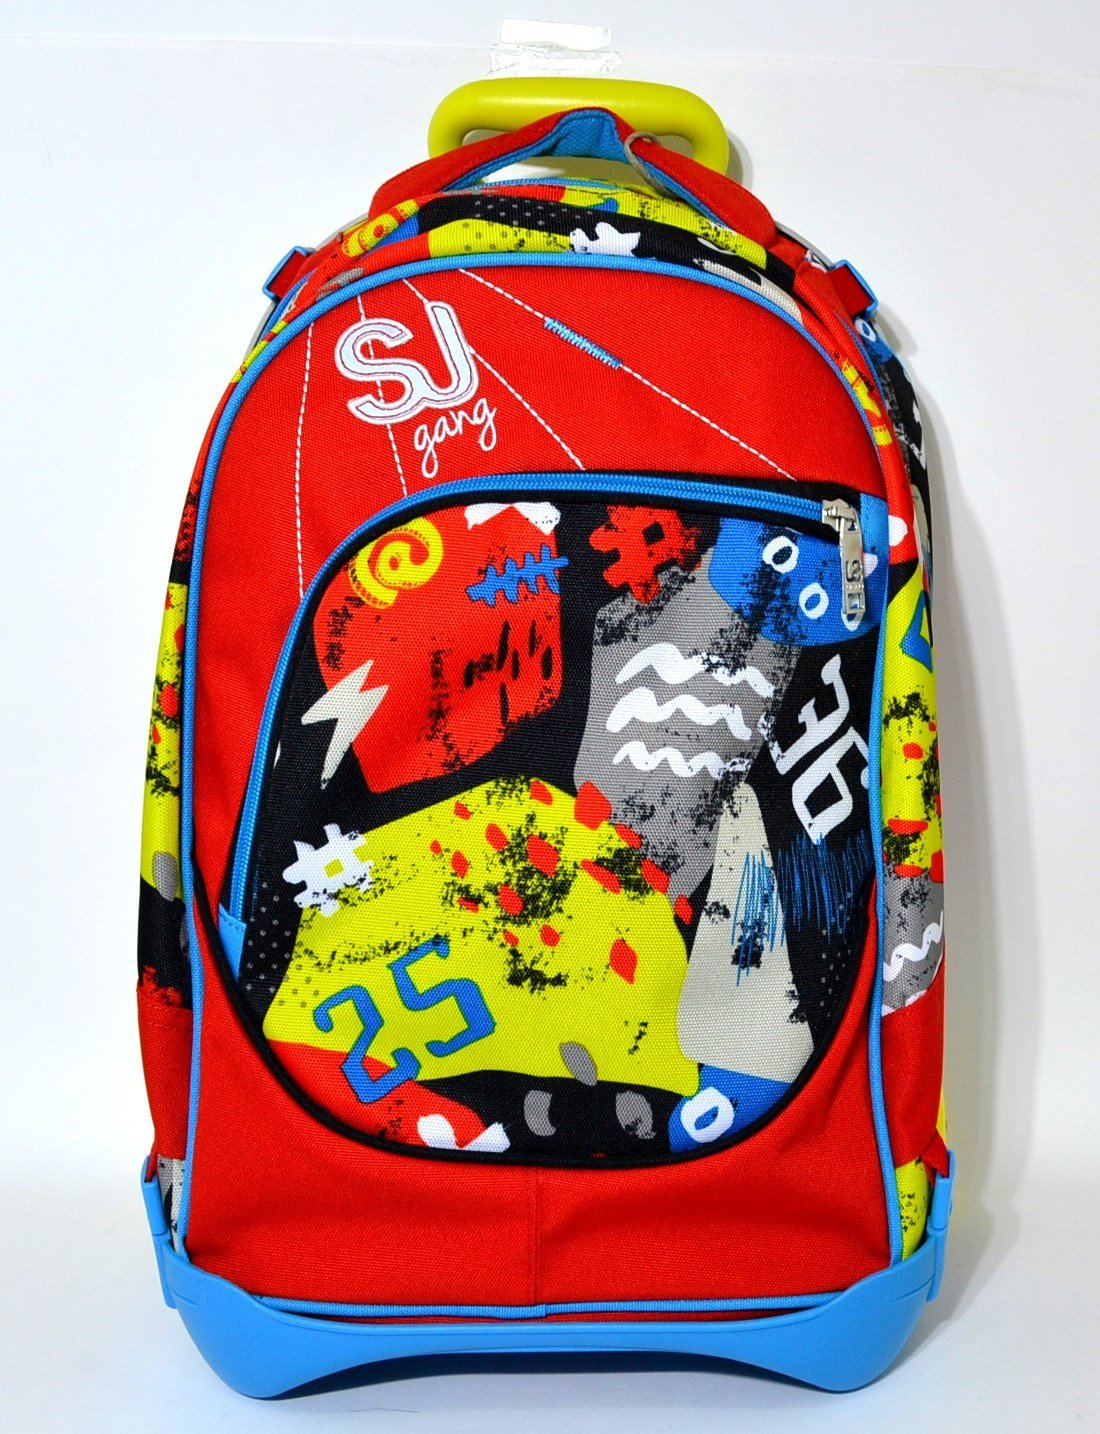 8bb31b3caf ZAINO TROLLEY SJ GANG SEVEN SEVEN SEVEN JACK JUNIOR BOY 28 LT HIGH TECH  ROSSO AZZURRO b45903